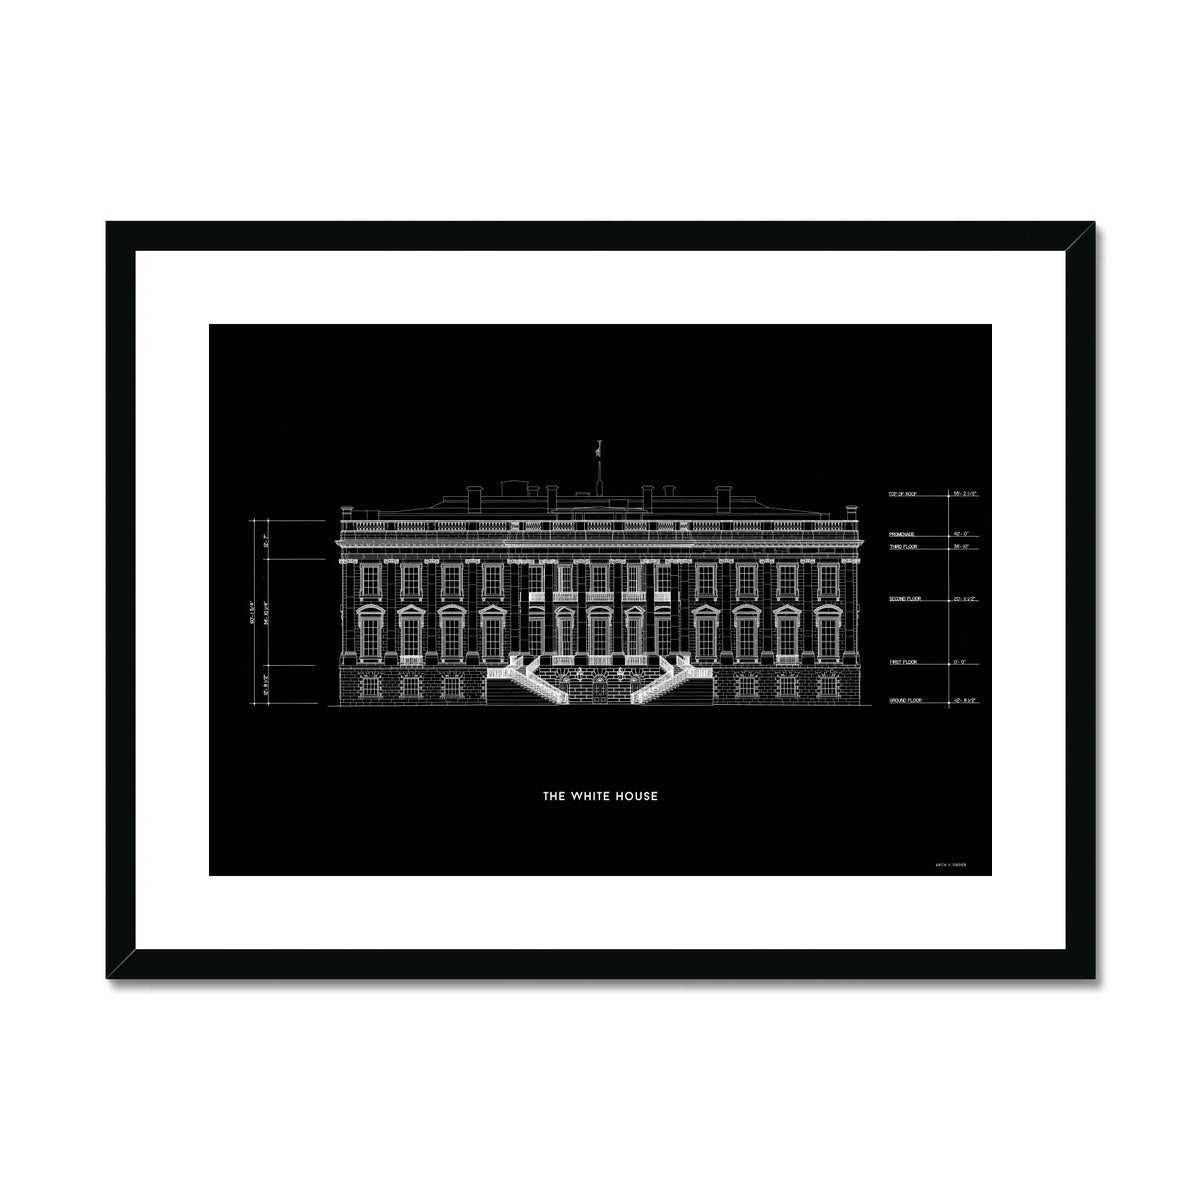 The White House South Elevation - Black -  Framed & Mounted Print